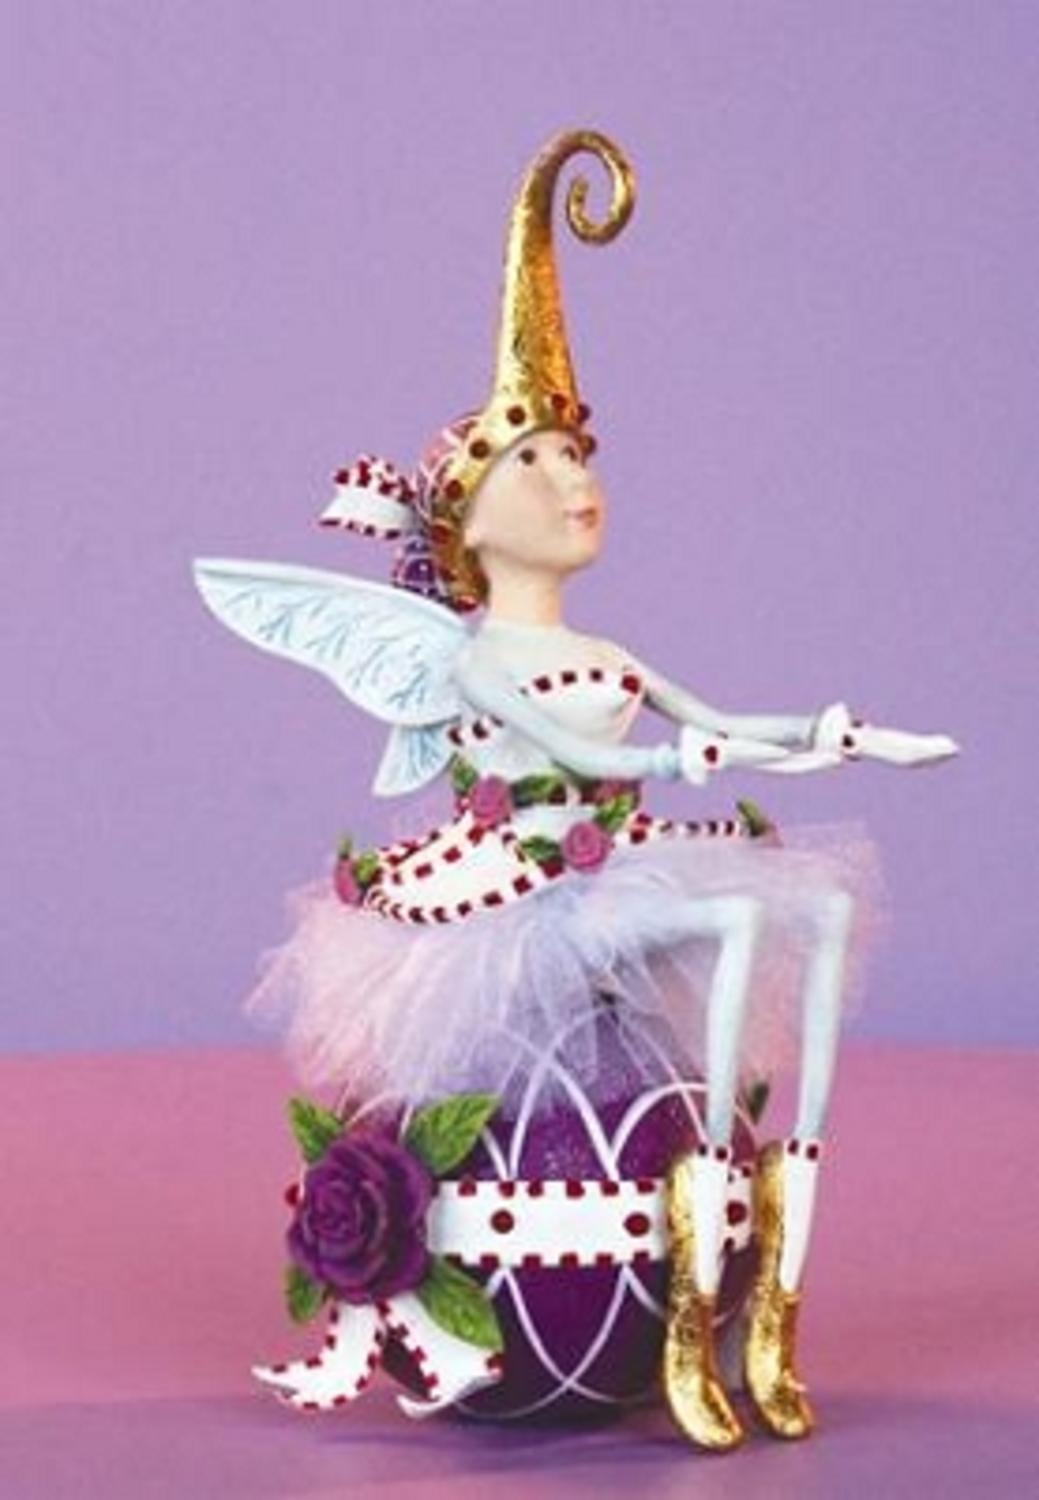 Patience Brewster Krinkles Sugar Plum Fairy Christmas Figure